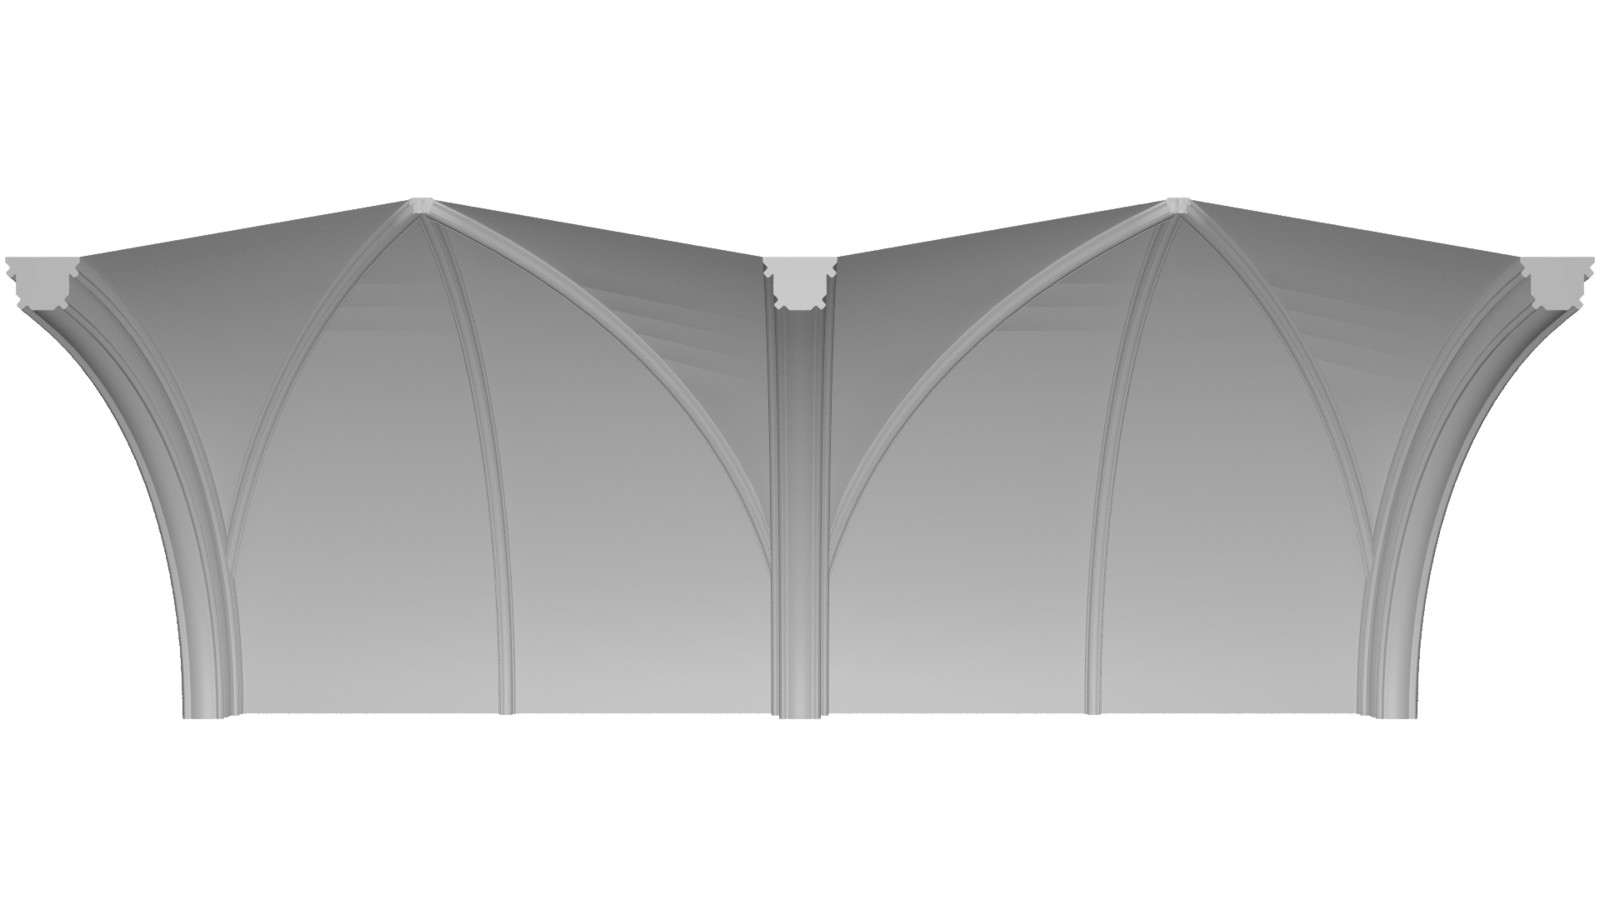 Top arches separated